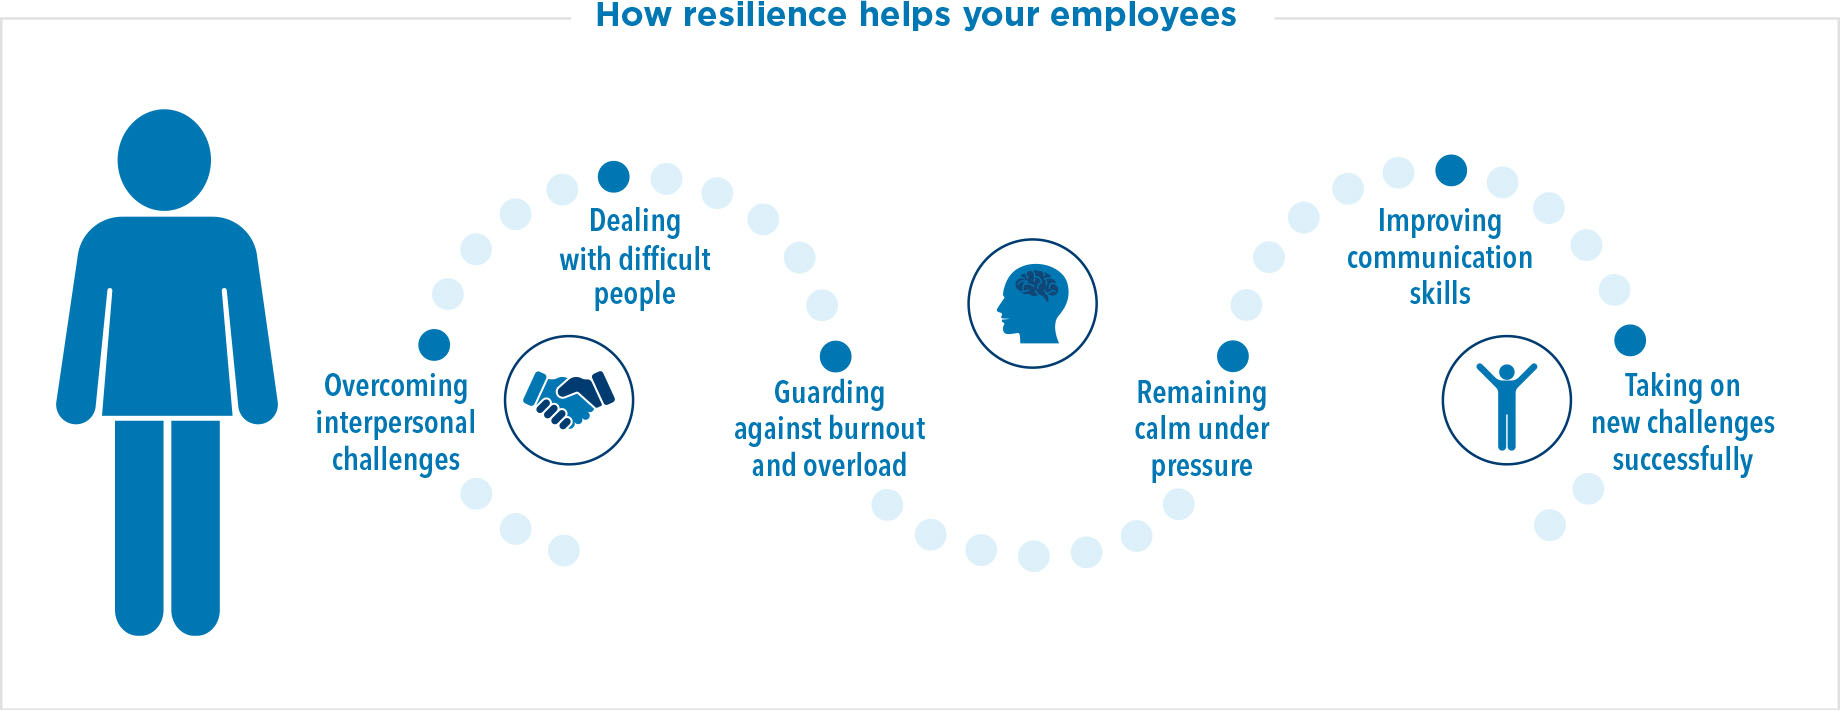 How resilience helps your employees: overcoming interpersonal challenges, dealing with difficult people, guarding against burnout and overload, remaining calm under pressure, improving communication skills, taking on new challenges